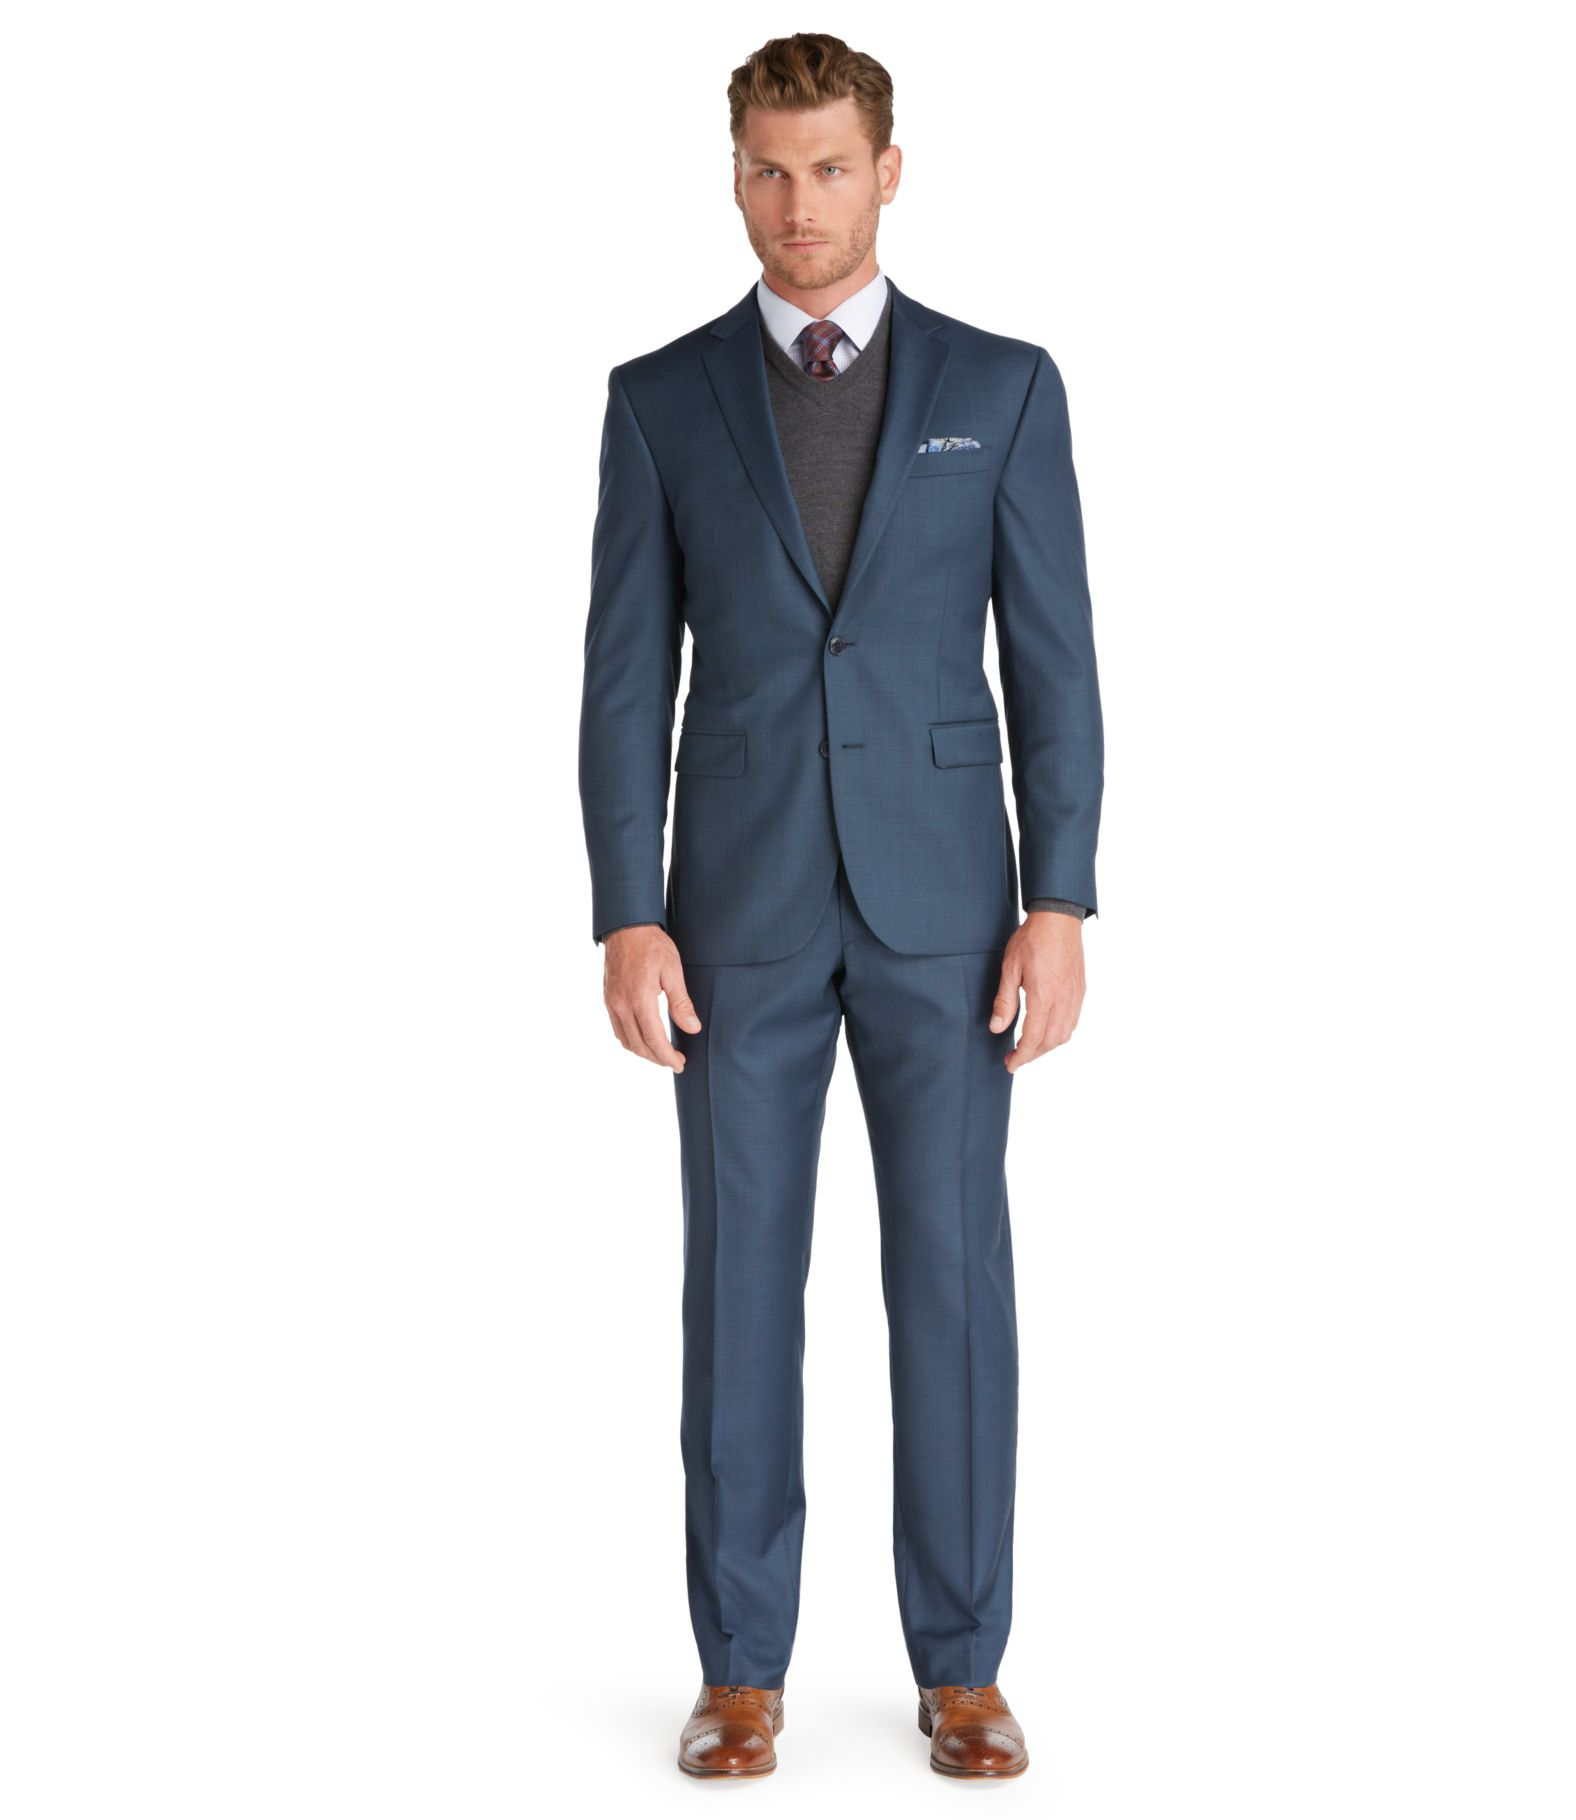 Traveler Collection Slim Fit Sharkskin Suit - Traveler Suits | Jos ...